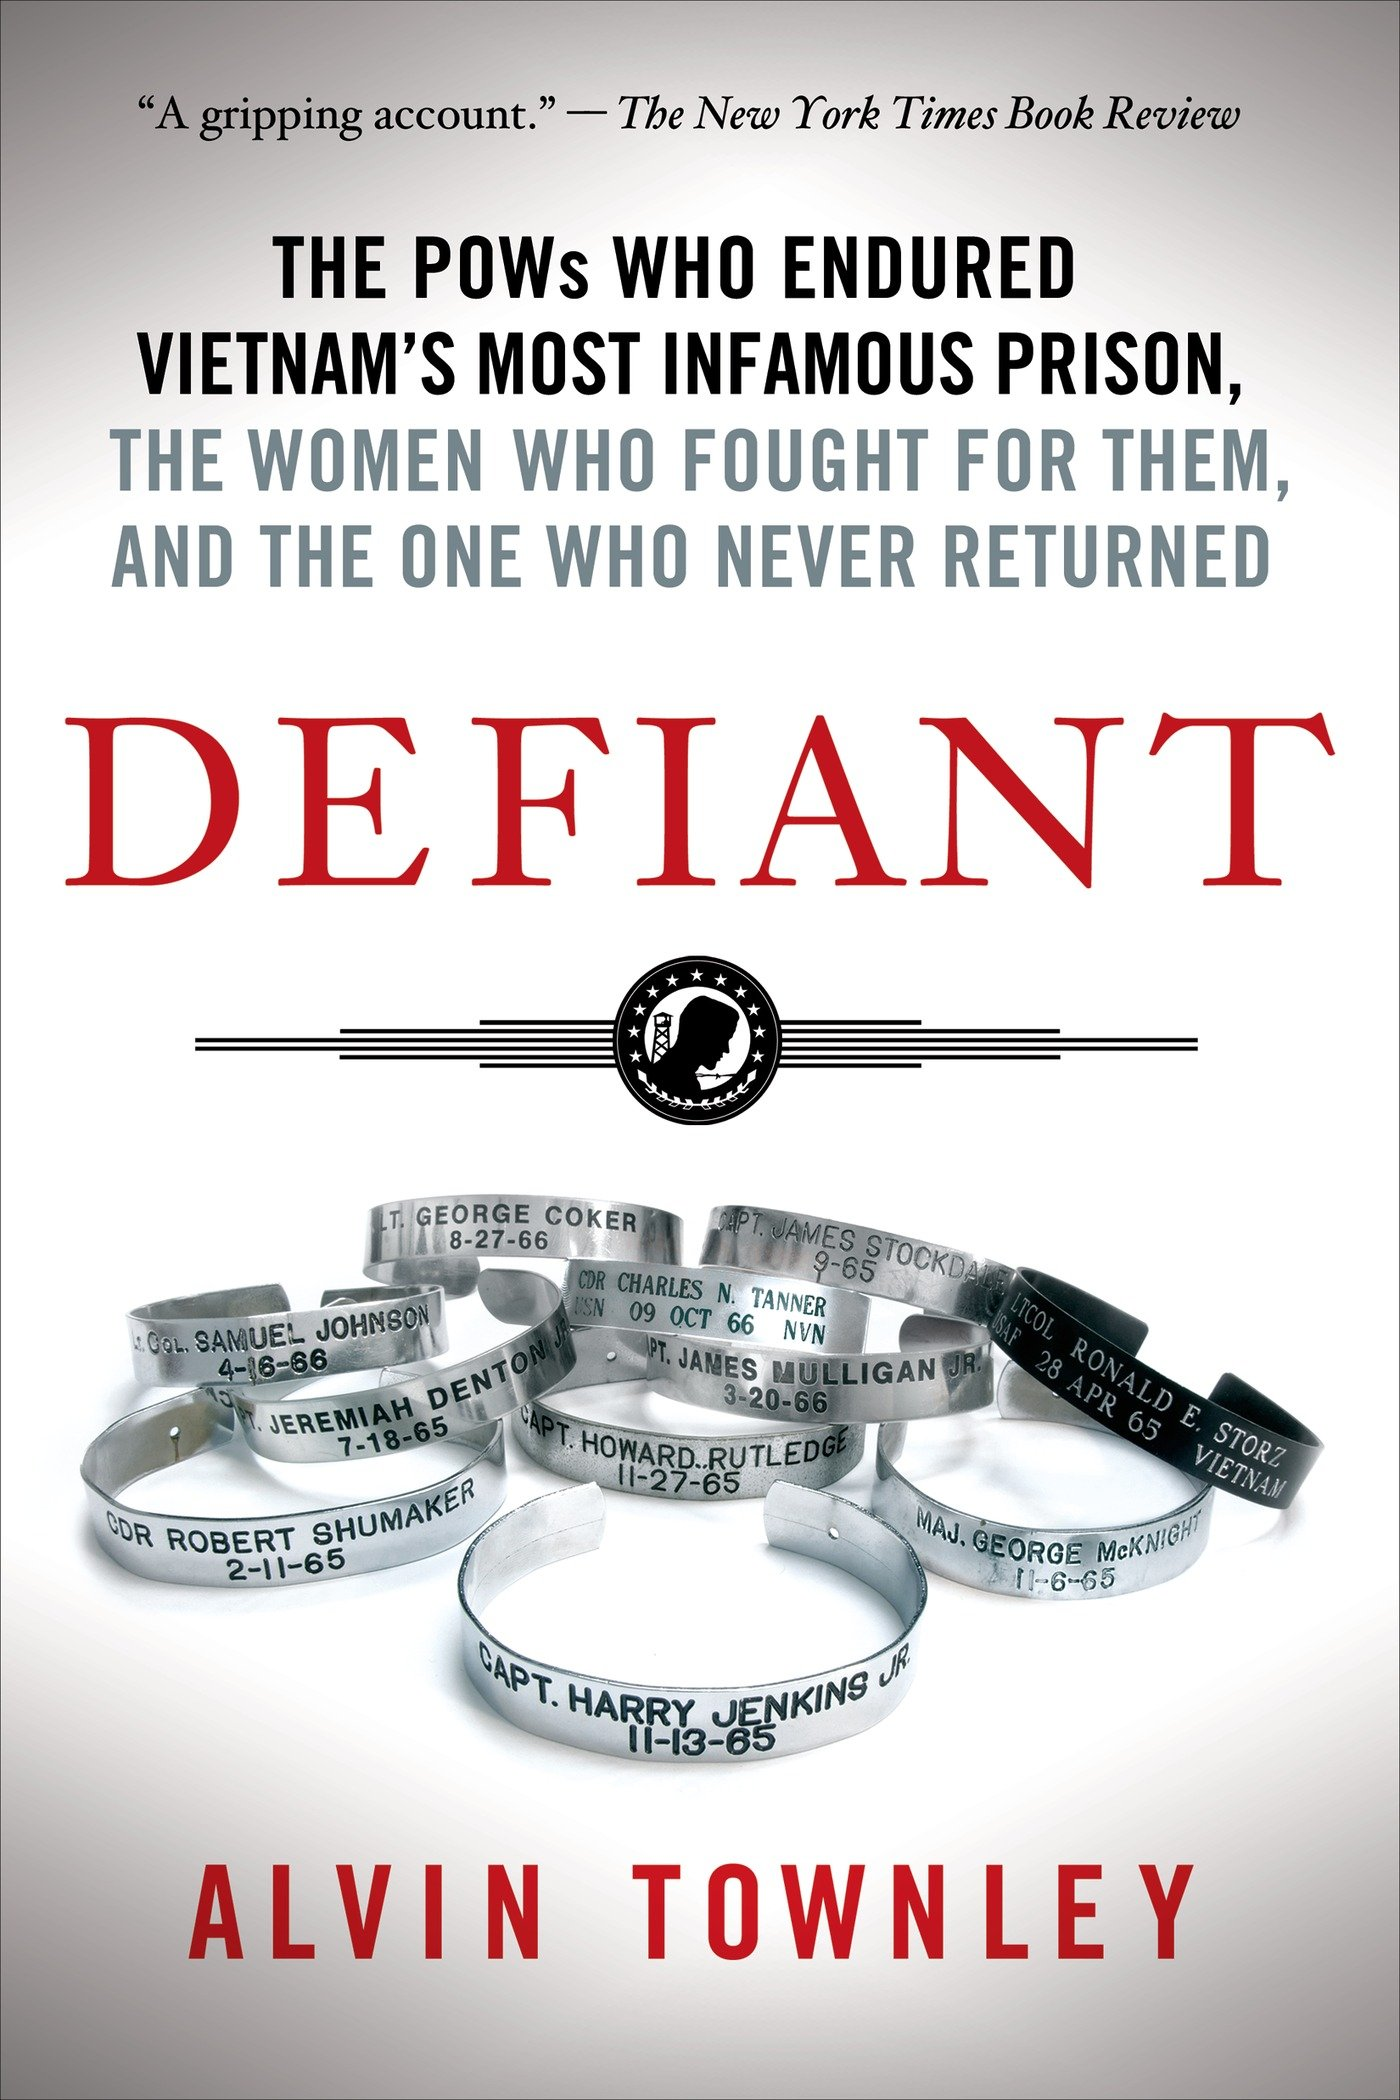 Defiant the pows who endured vietnams most infamous prison the defiant the pows who endured vietnams most infamous prison the women who fought for them and the one who never returned alvin townley 9781250060334 fandeluxe Images